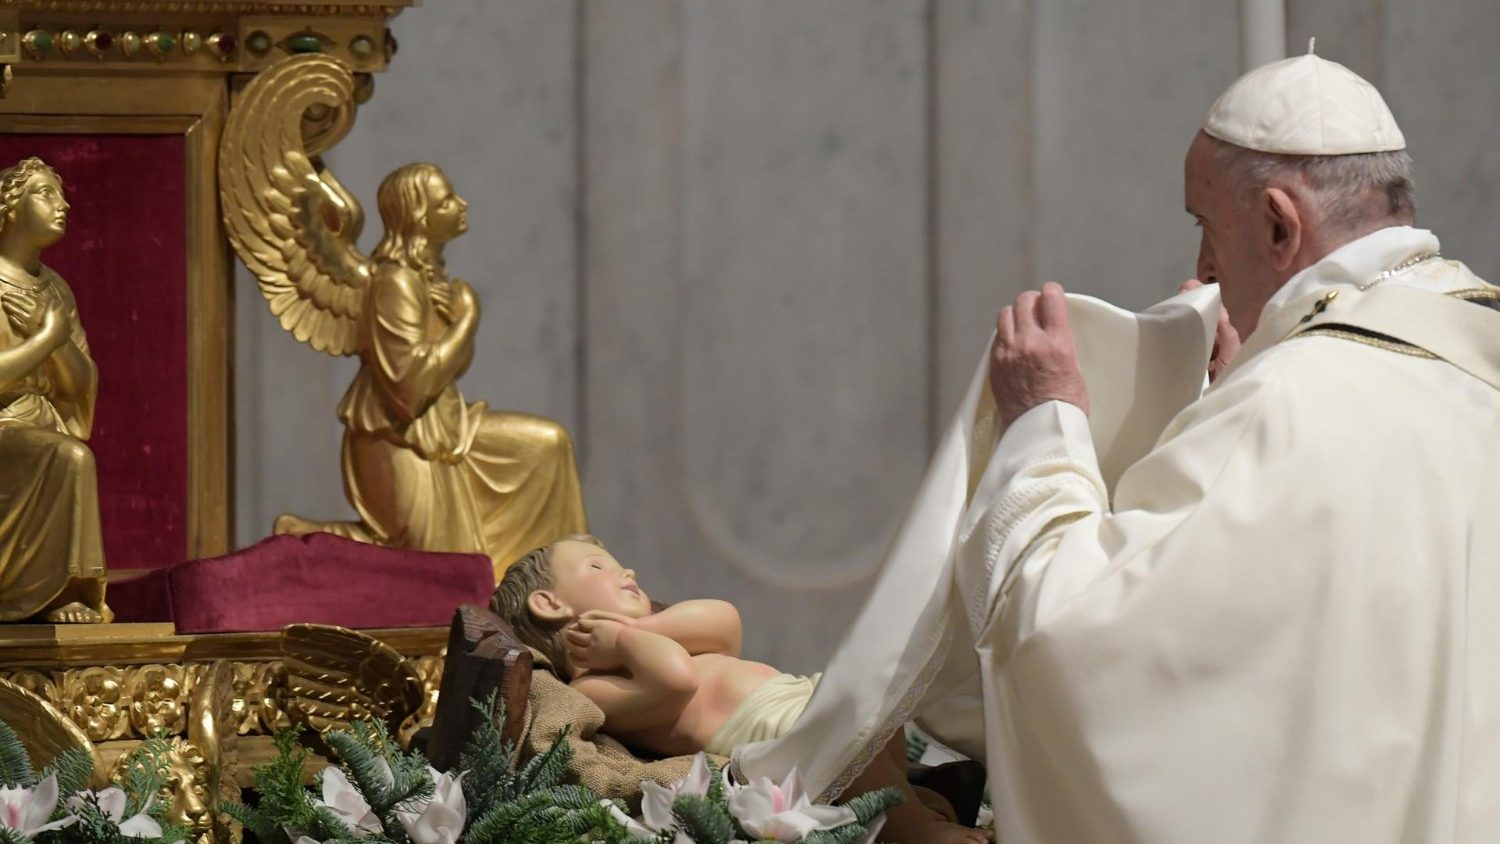 Pope at Christmas Mass: Jesus comes as a child to make us children of God